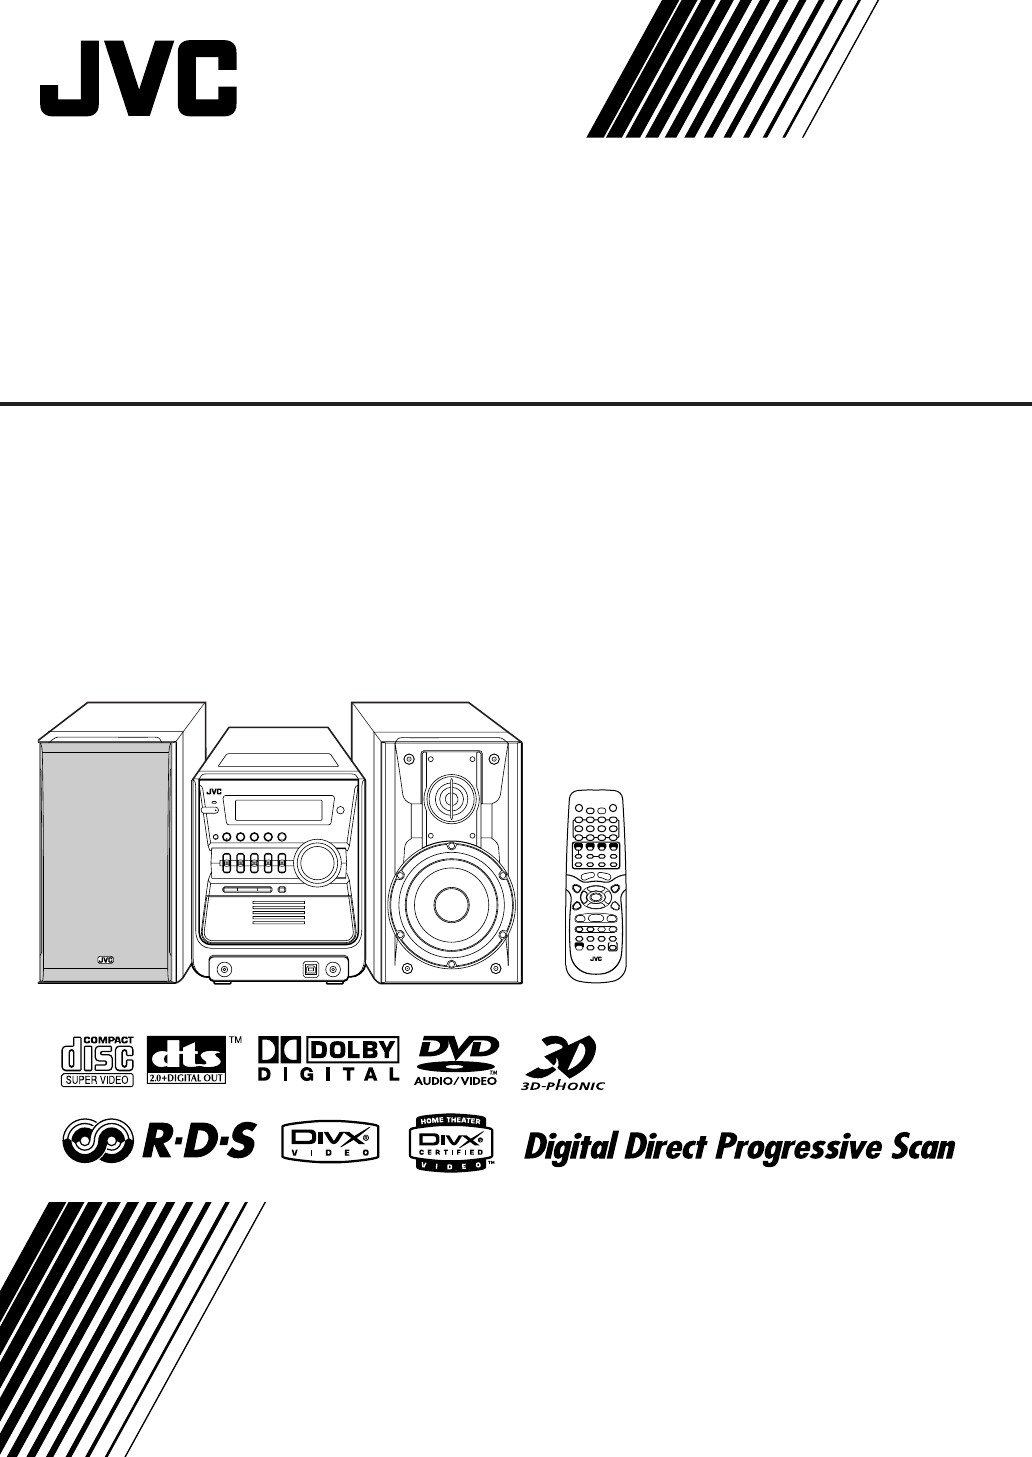 Jvc Stereo System Ux Gd7 User Guide